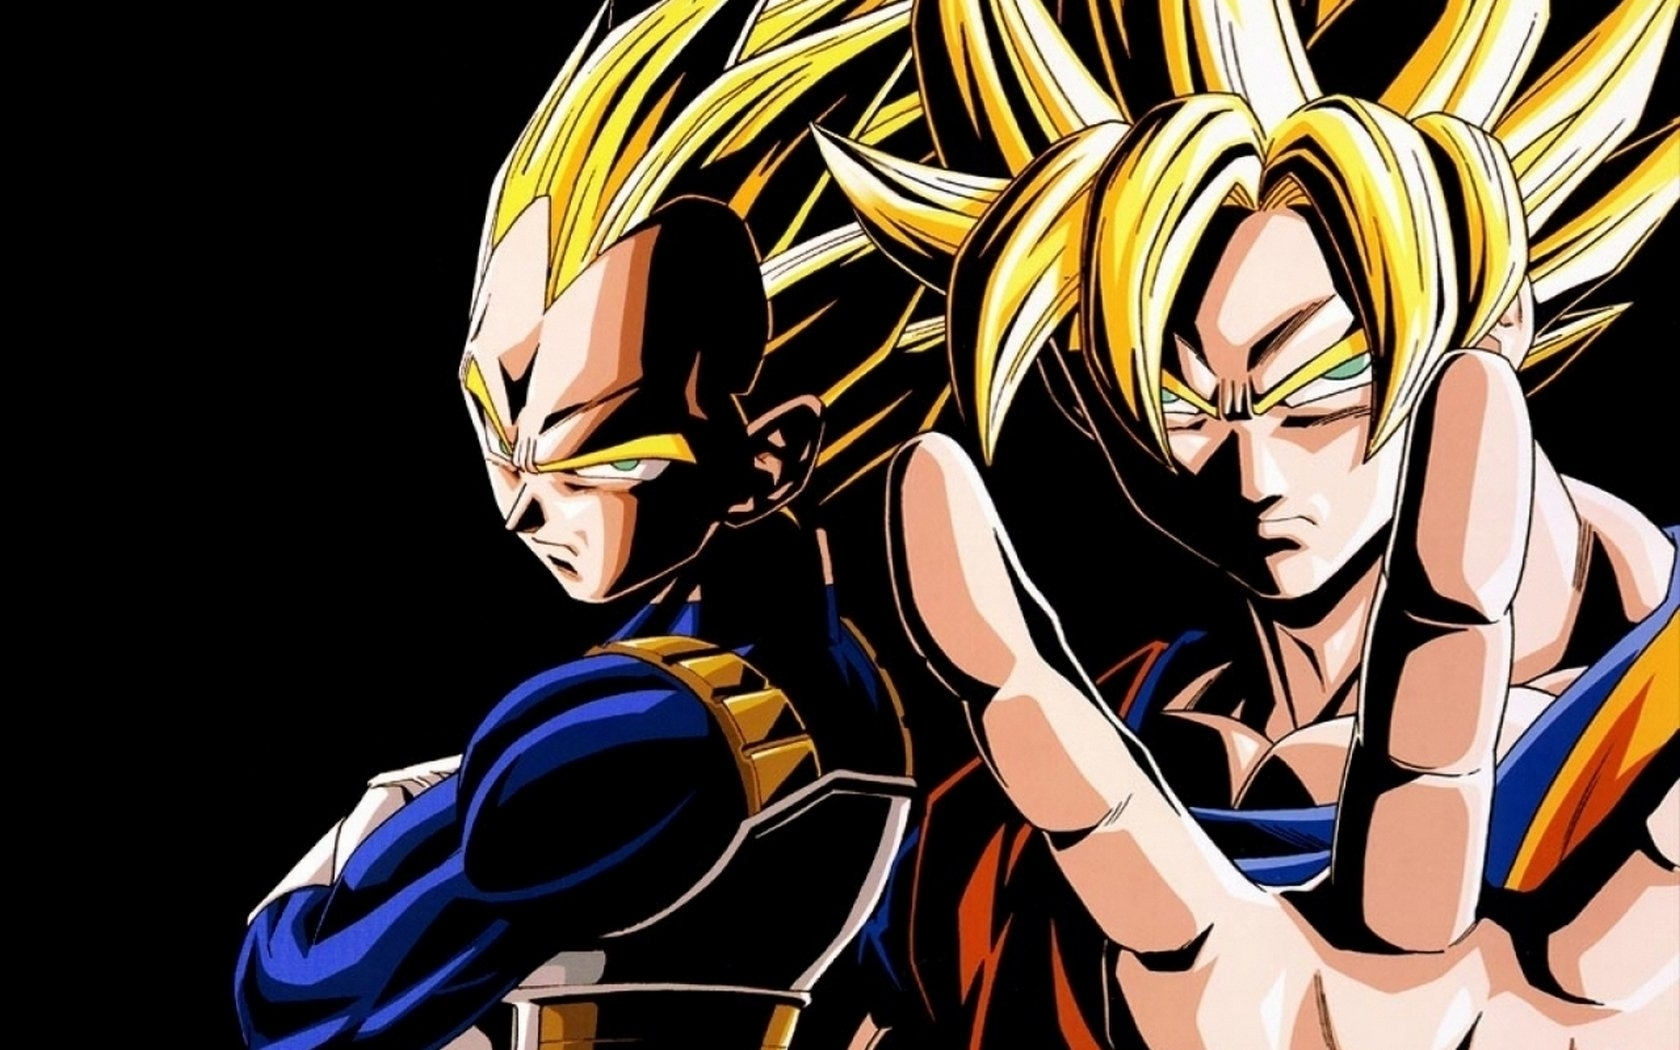 goku & vegeta wallpaper and background image | 1680x1050 | id:197837